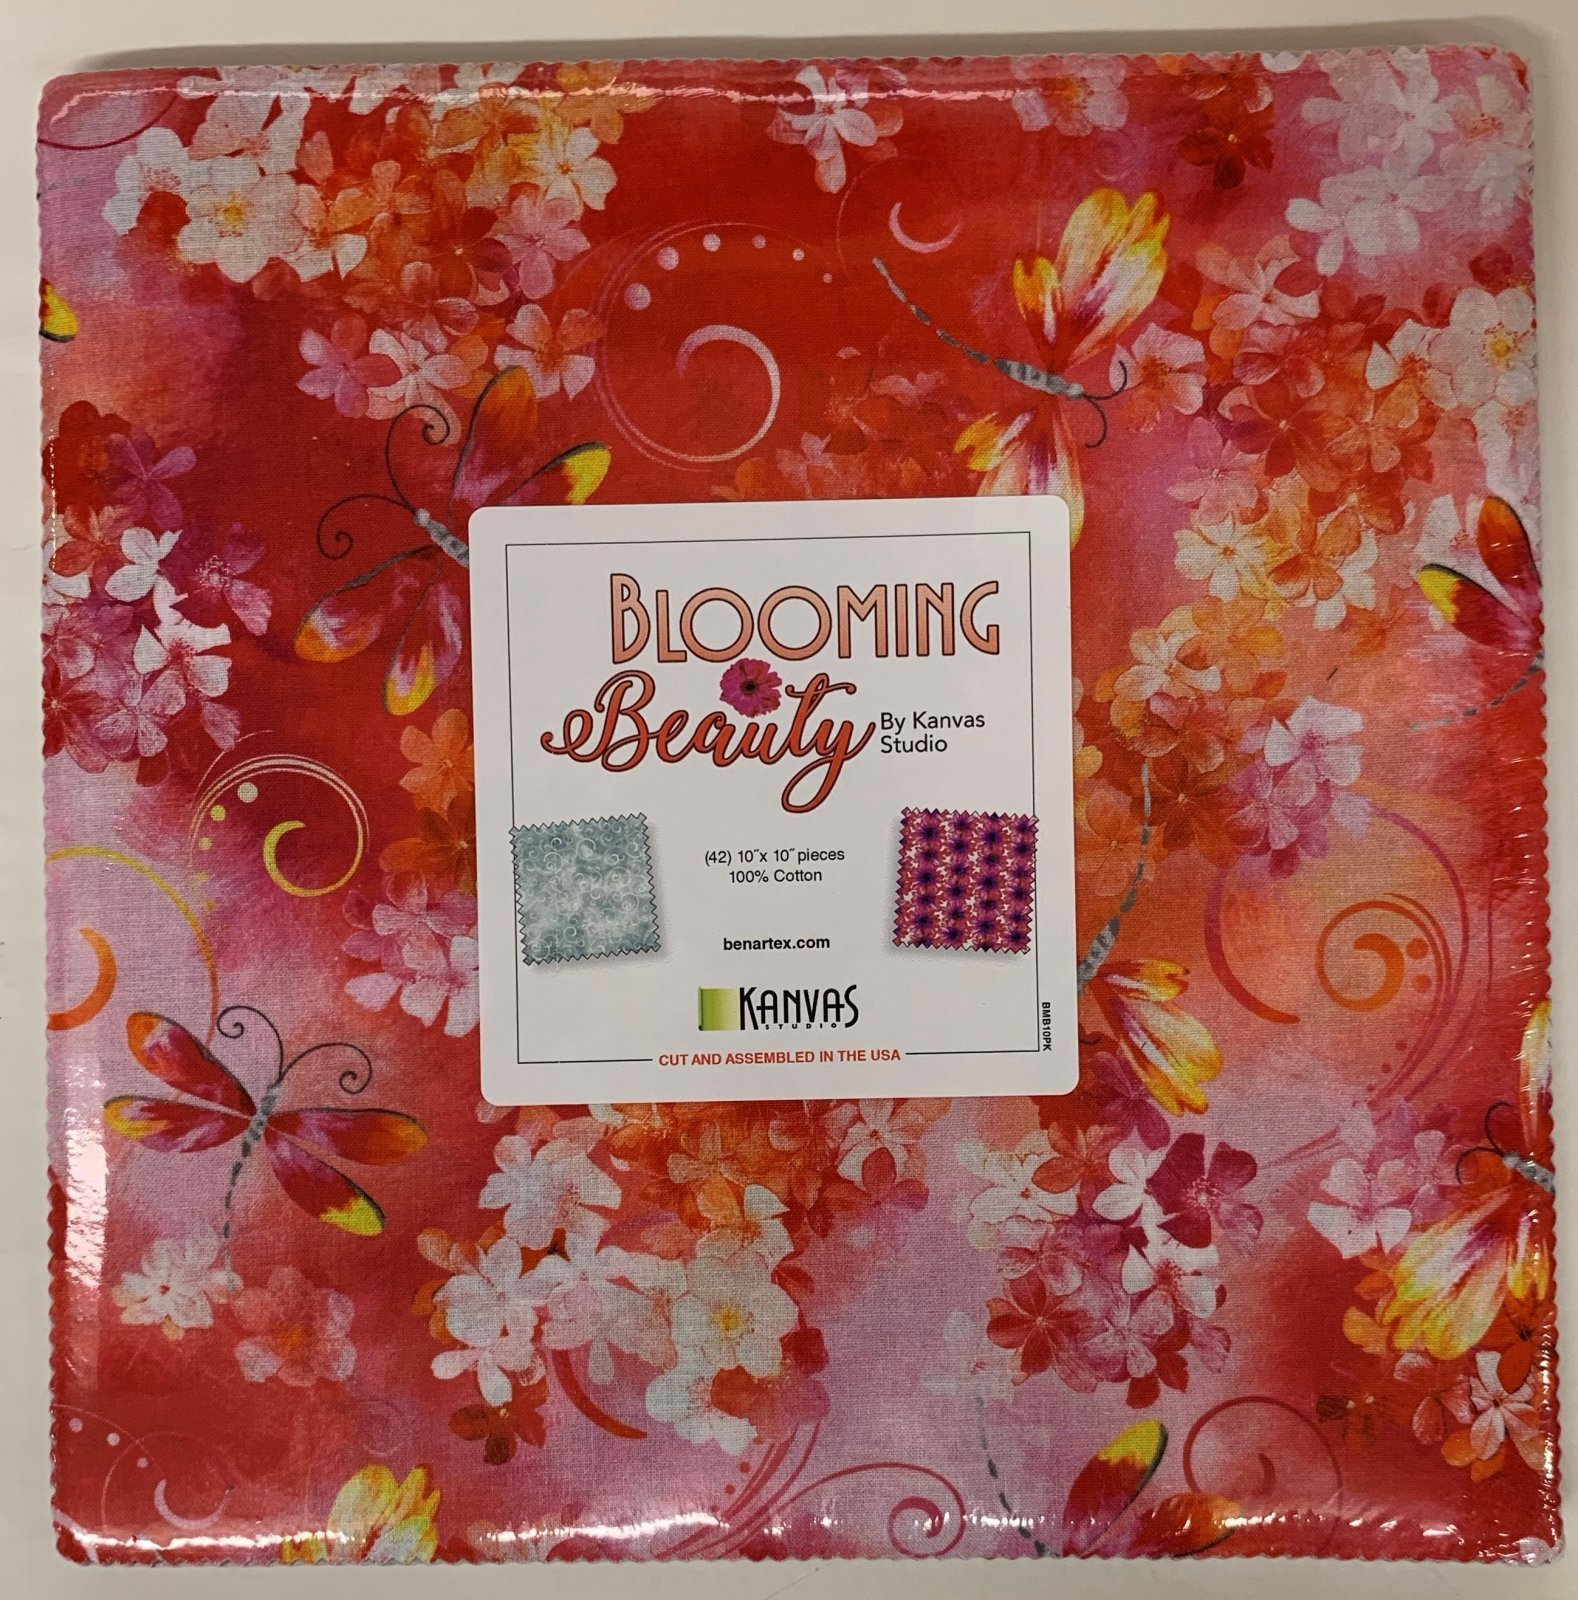 Blooming Beauty 10x10 Pack